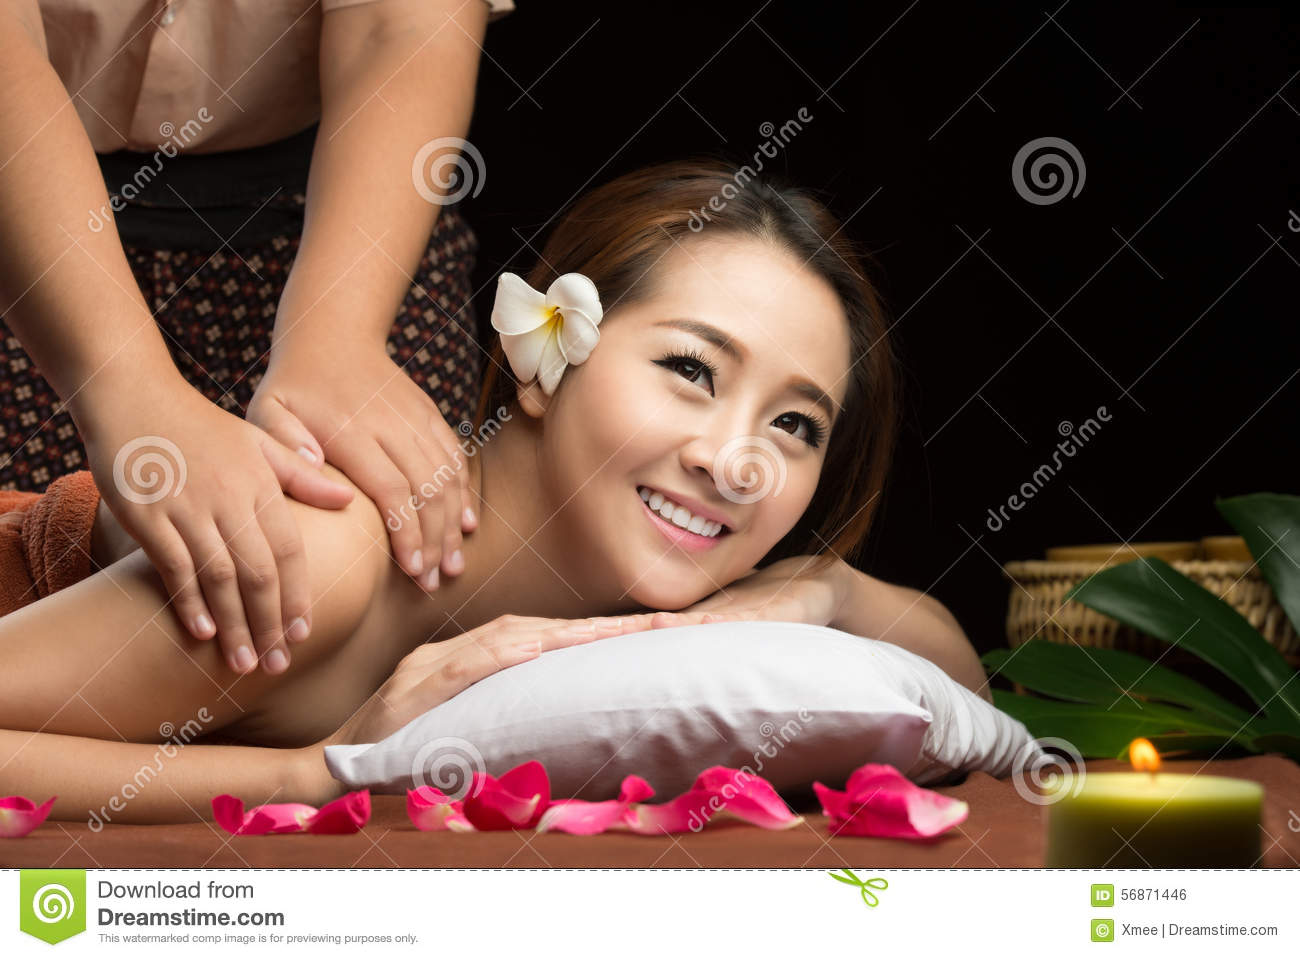 Nice asian nail spa she's fucking great